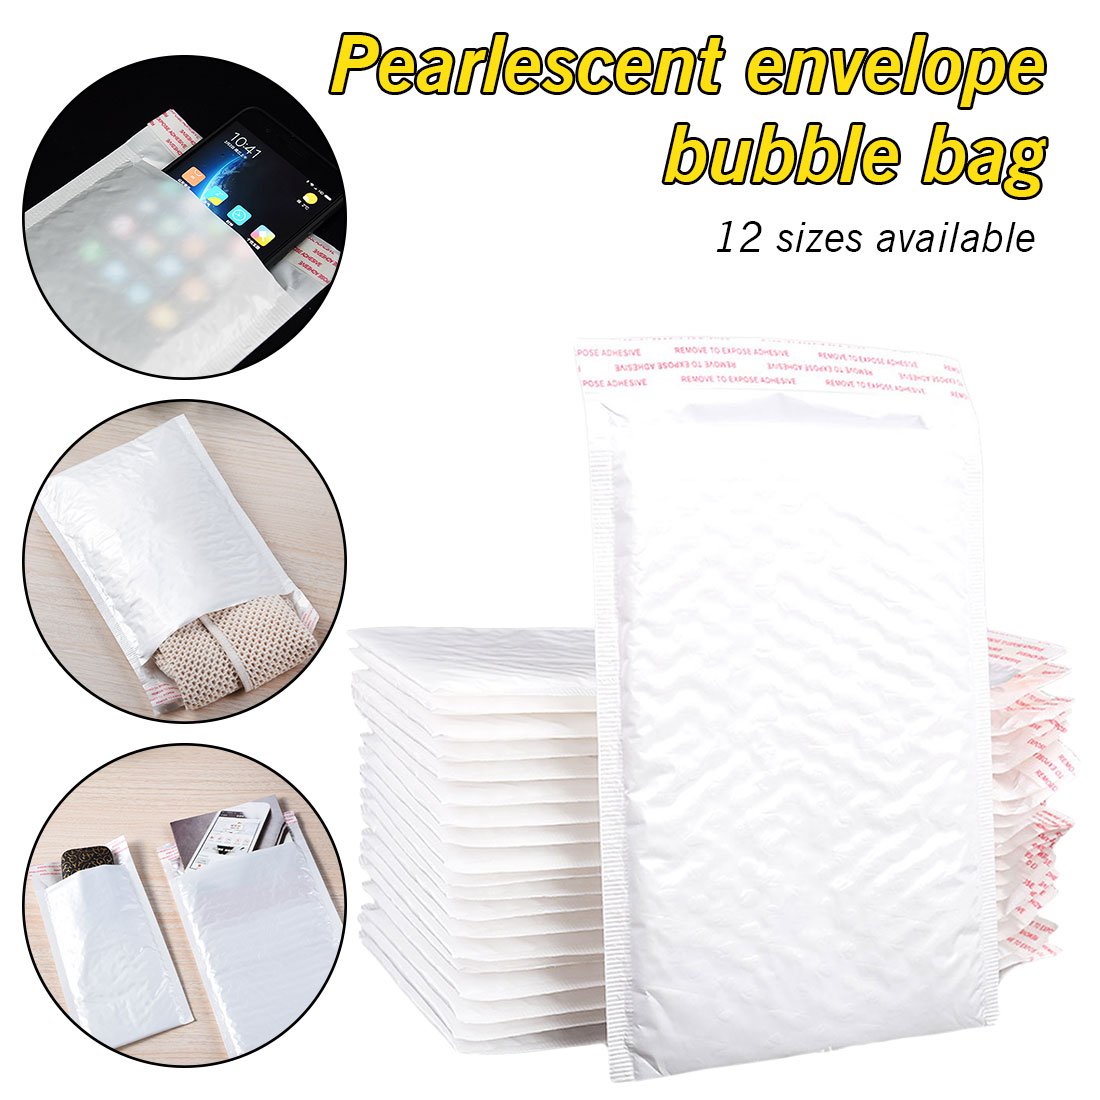 10pcs 12 Size White Bubble Mail Envelope Bag Bubble Postage Packing Envelope Packing Transportation Bags